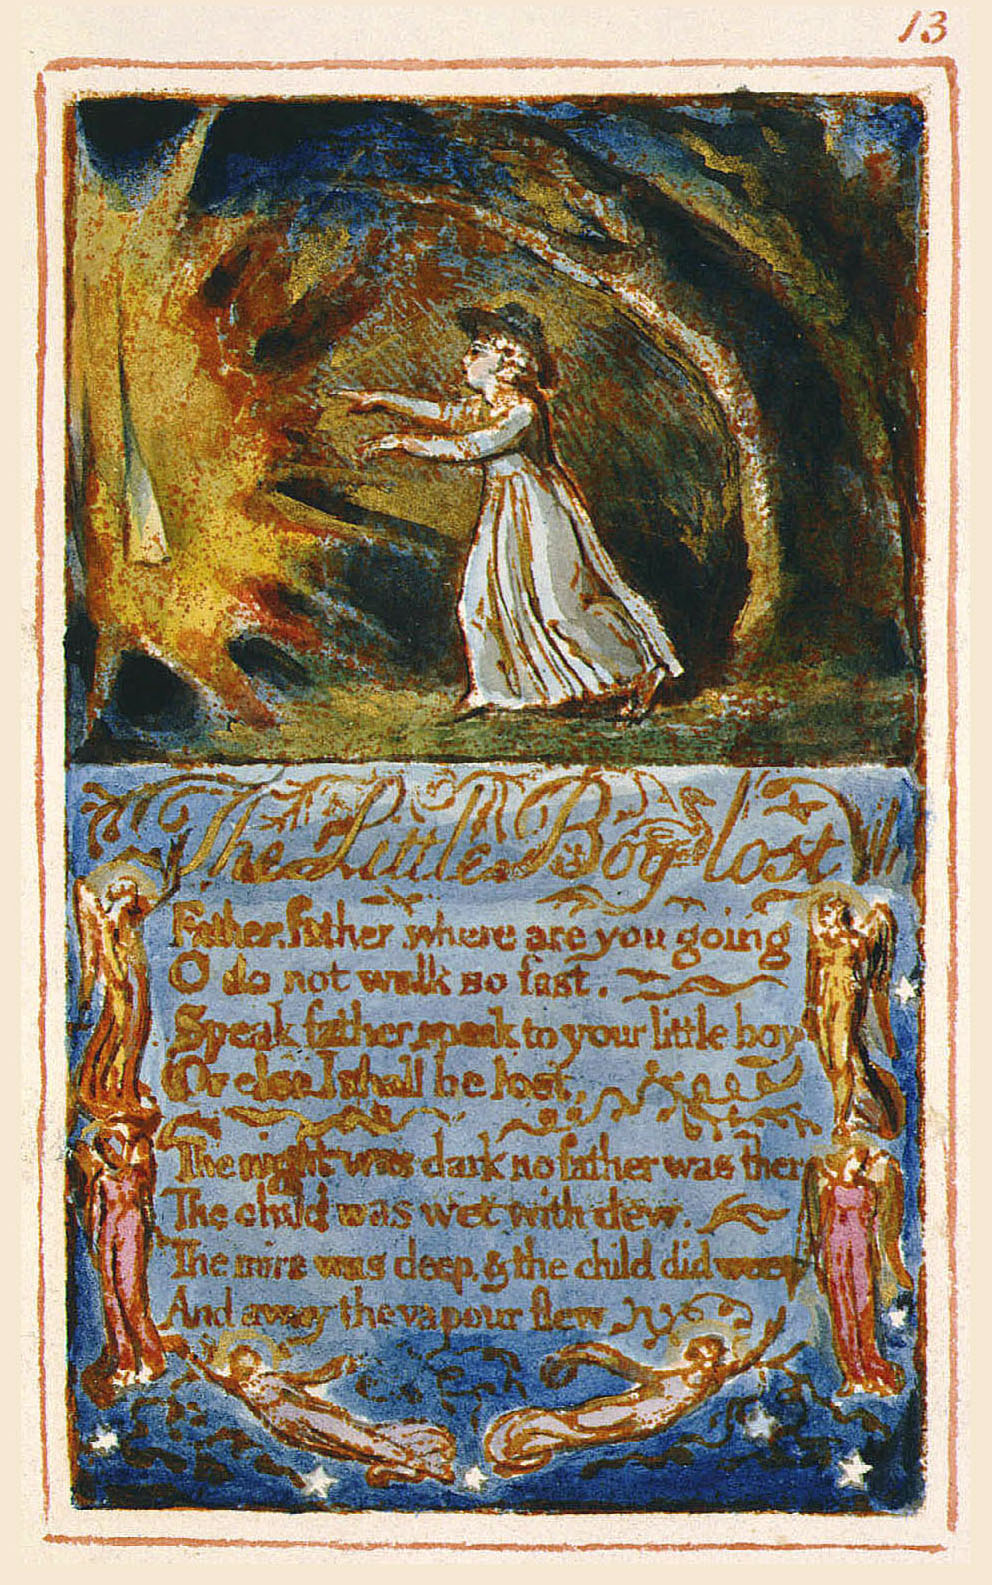 An Analysis of William Blake's Songs of Innocence and Experience